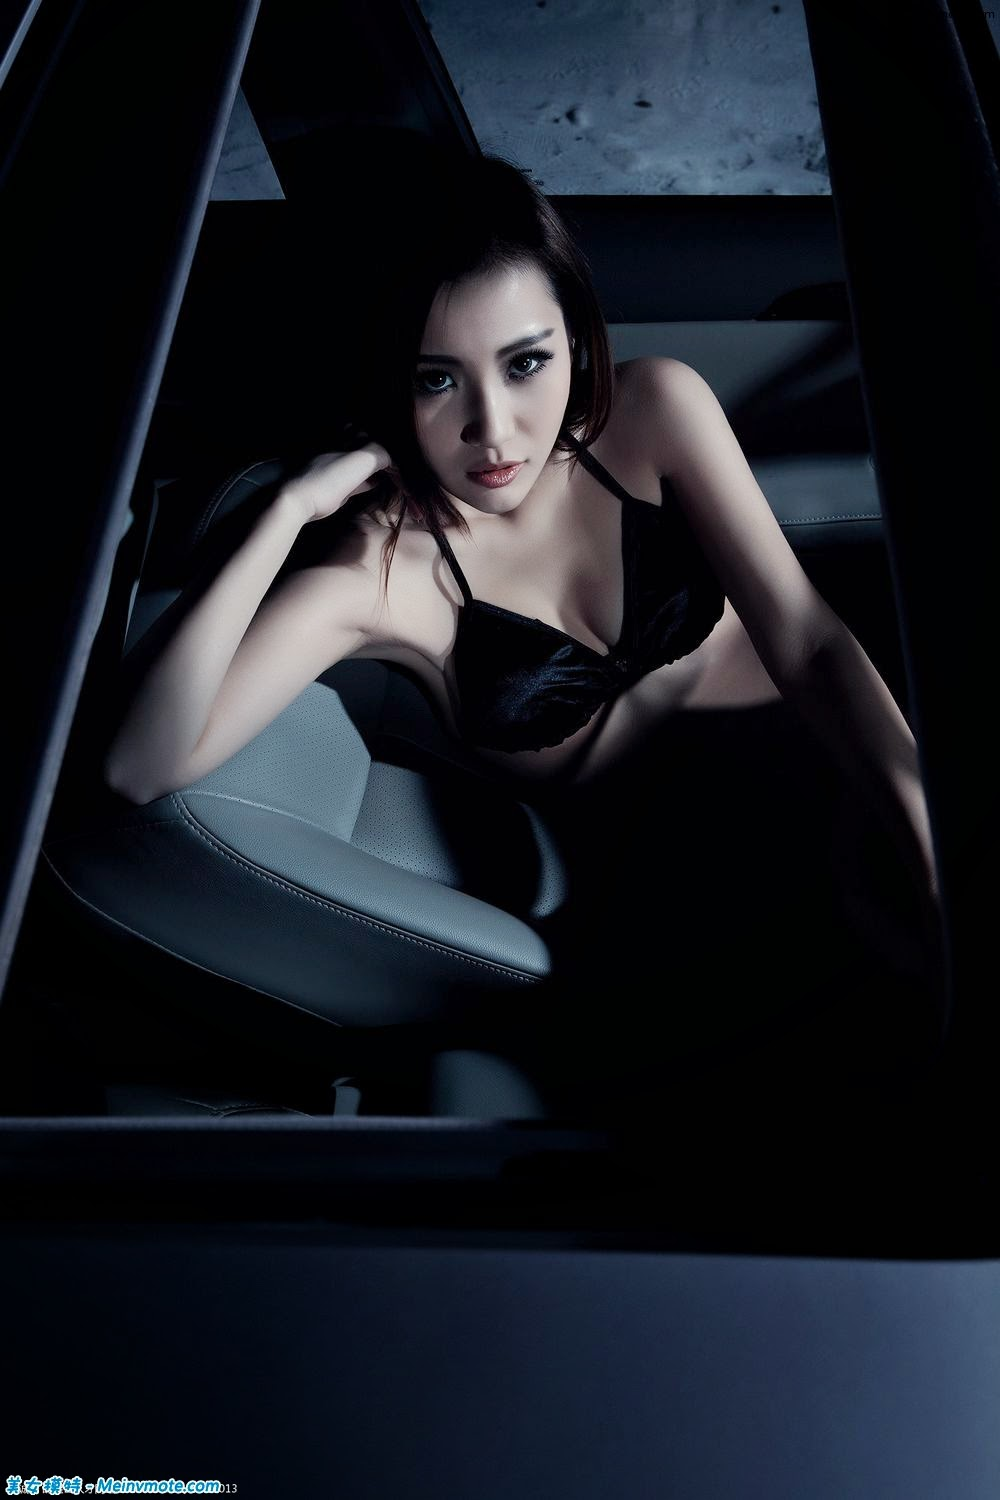 Han Xin Yi daring dance dress with car